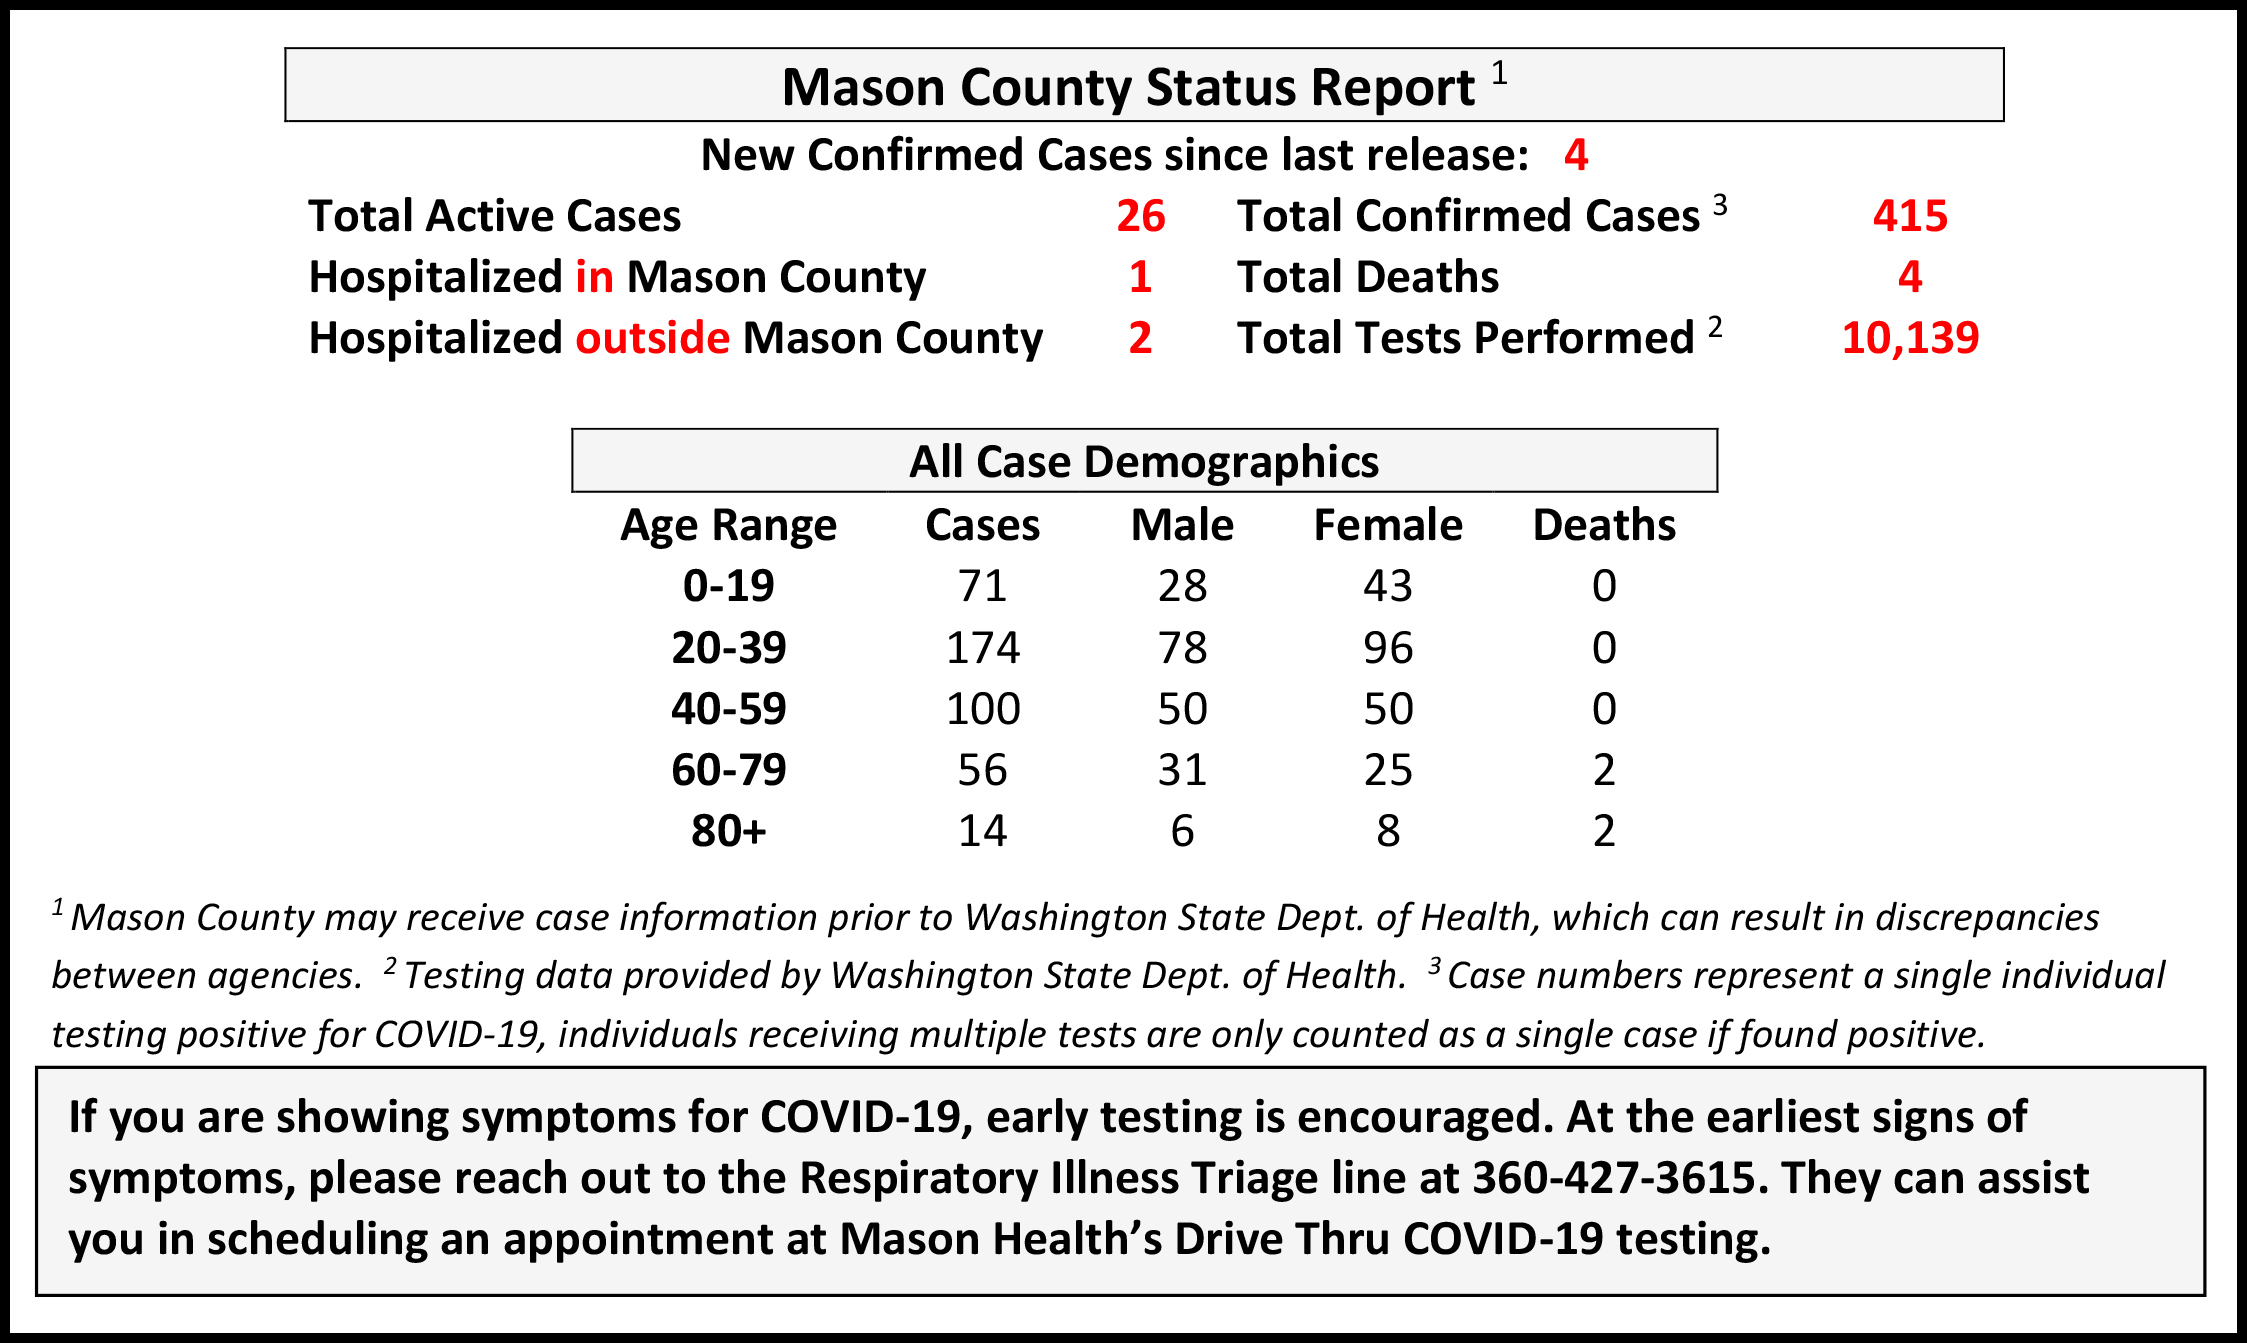 1 new COVID-19 case reported by county